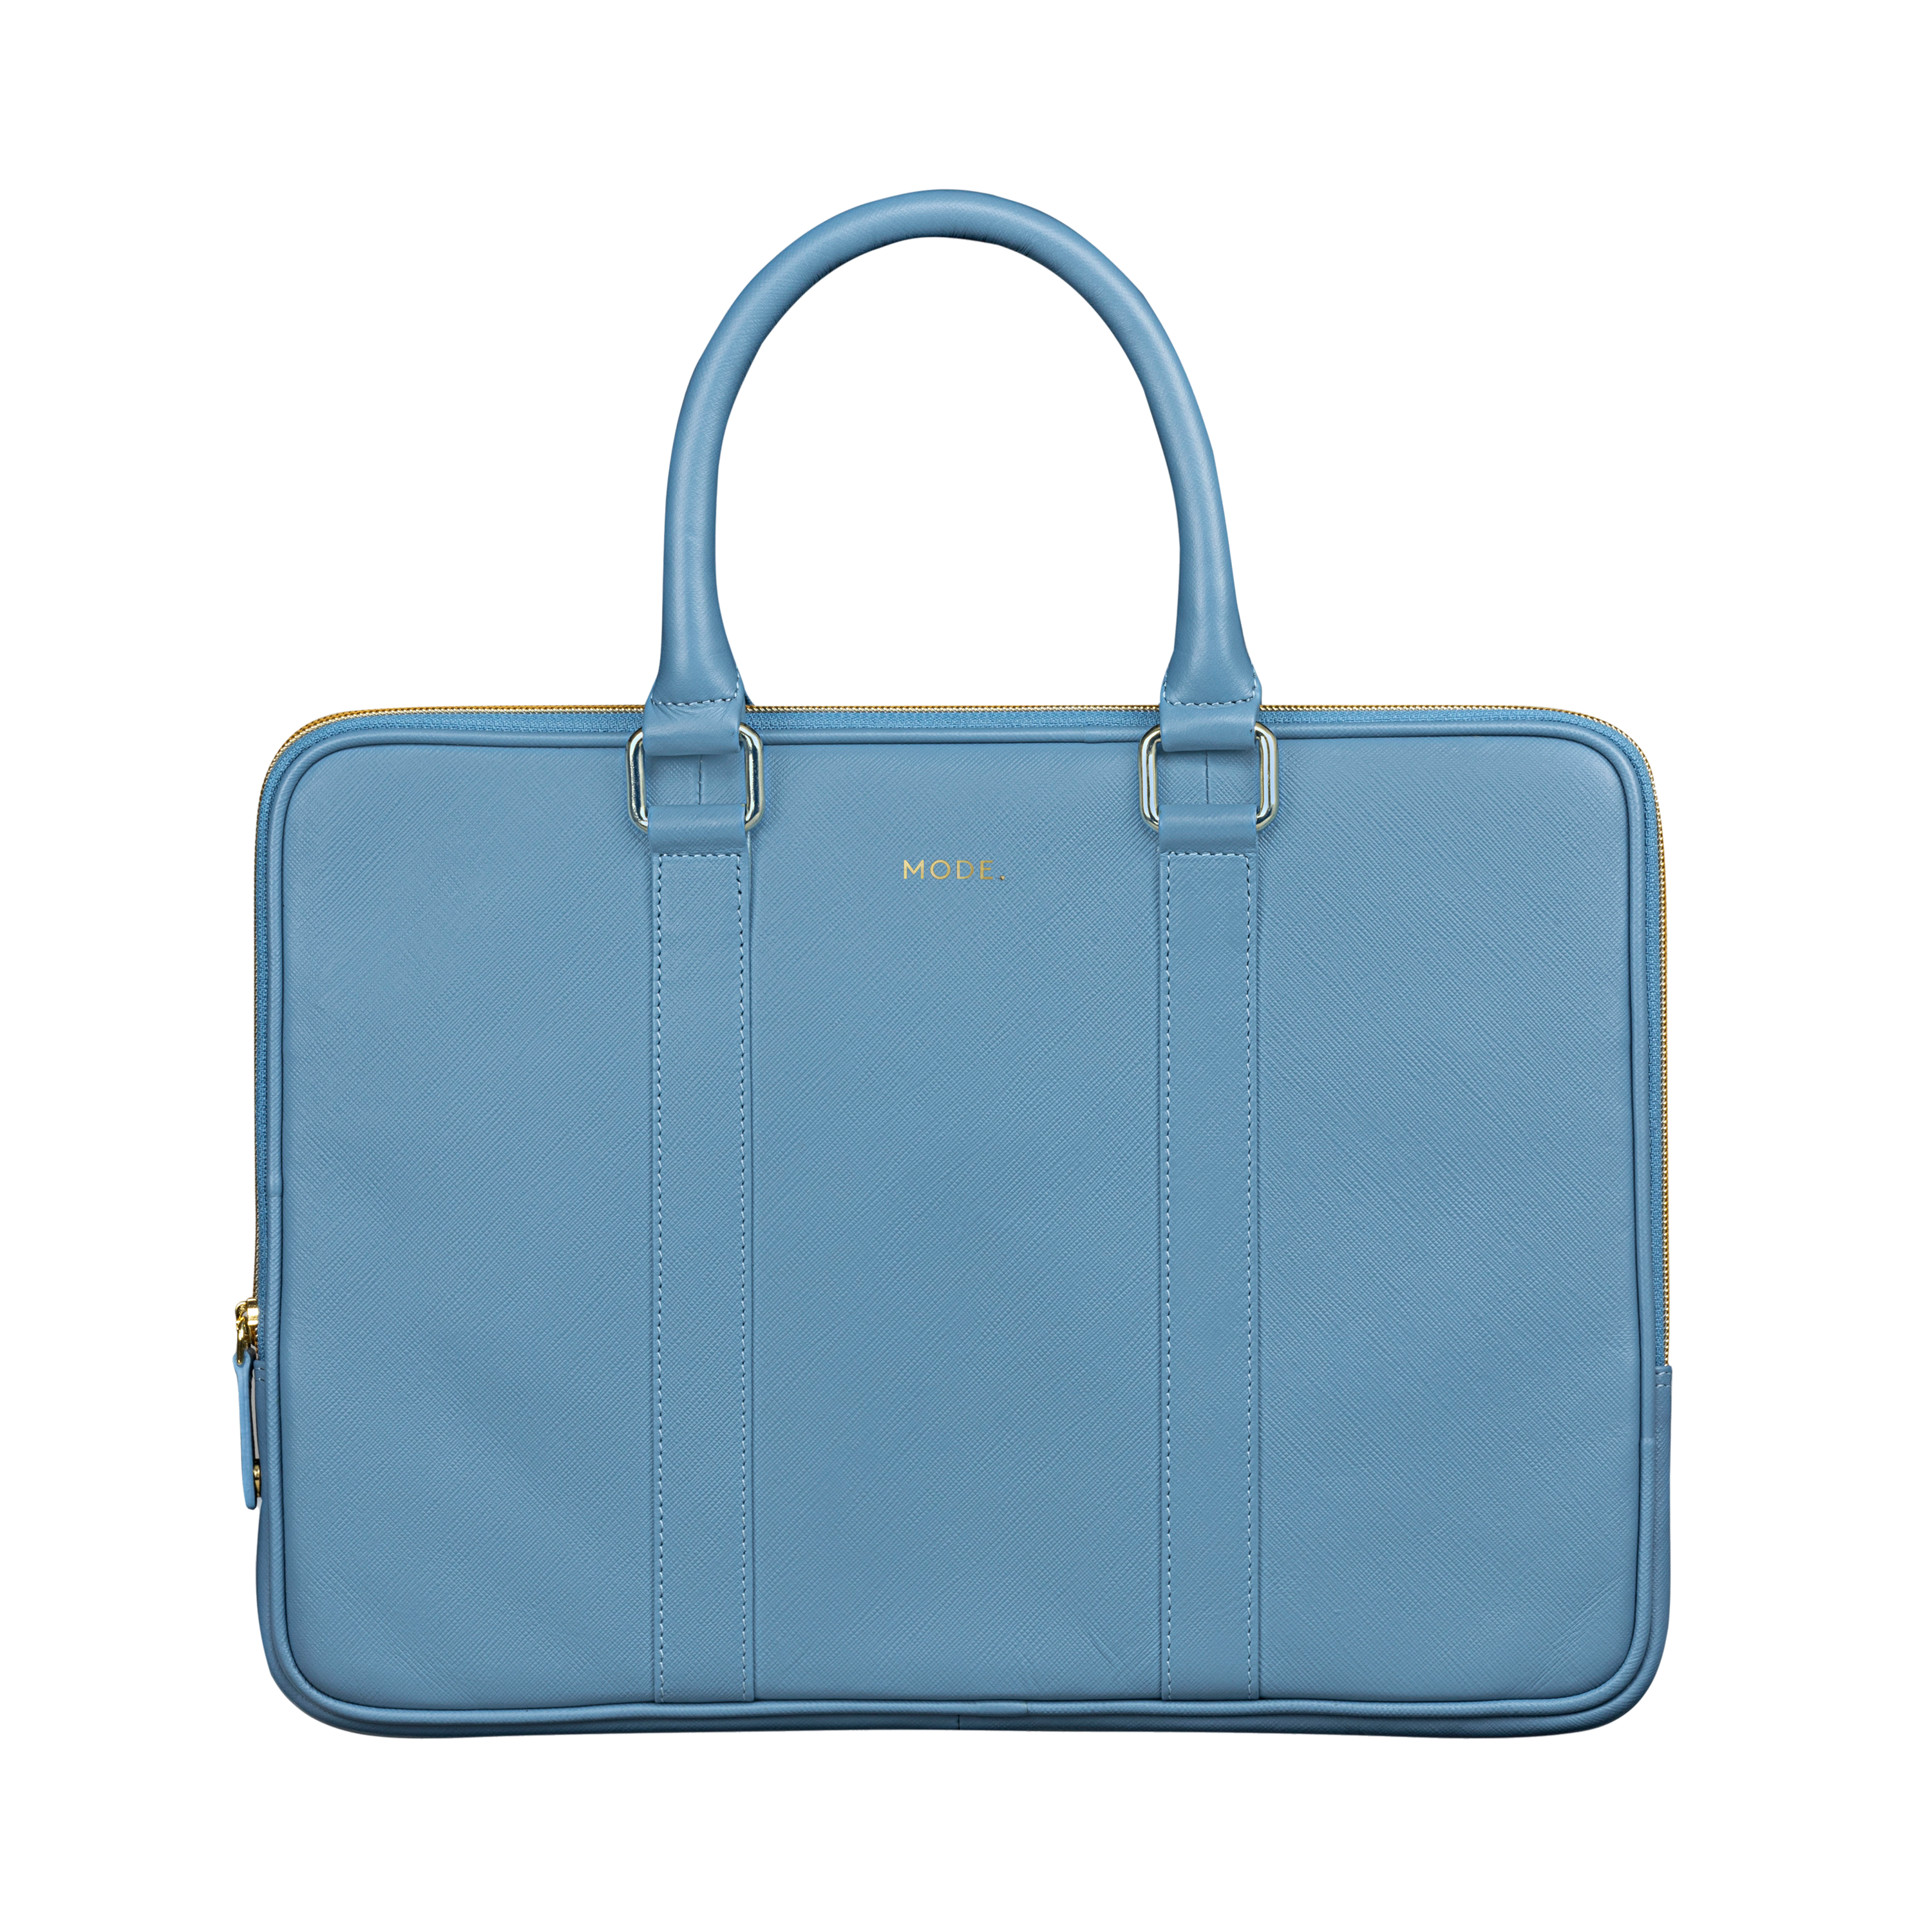 Saffiano full-grain leather